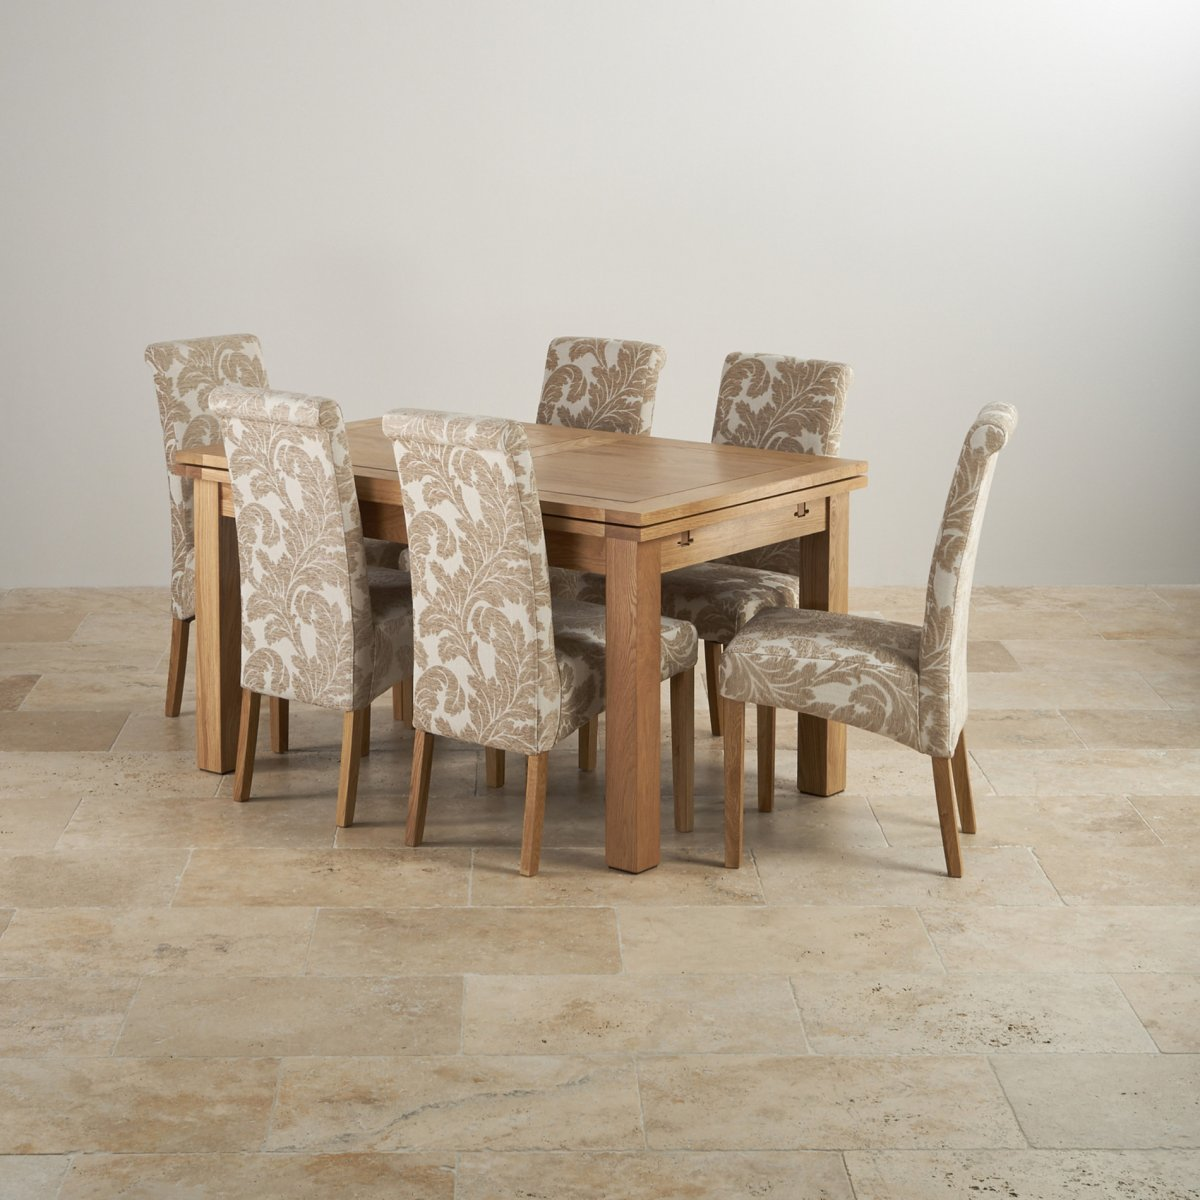 Dorset Natural Solid Oak 4ft 7 Extending Table With 6 Scroll Back Patterned Beige Fabric Chairs